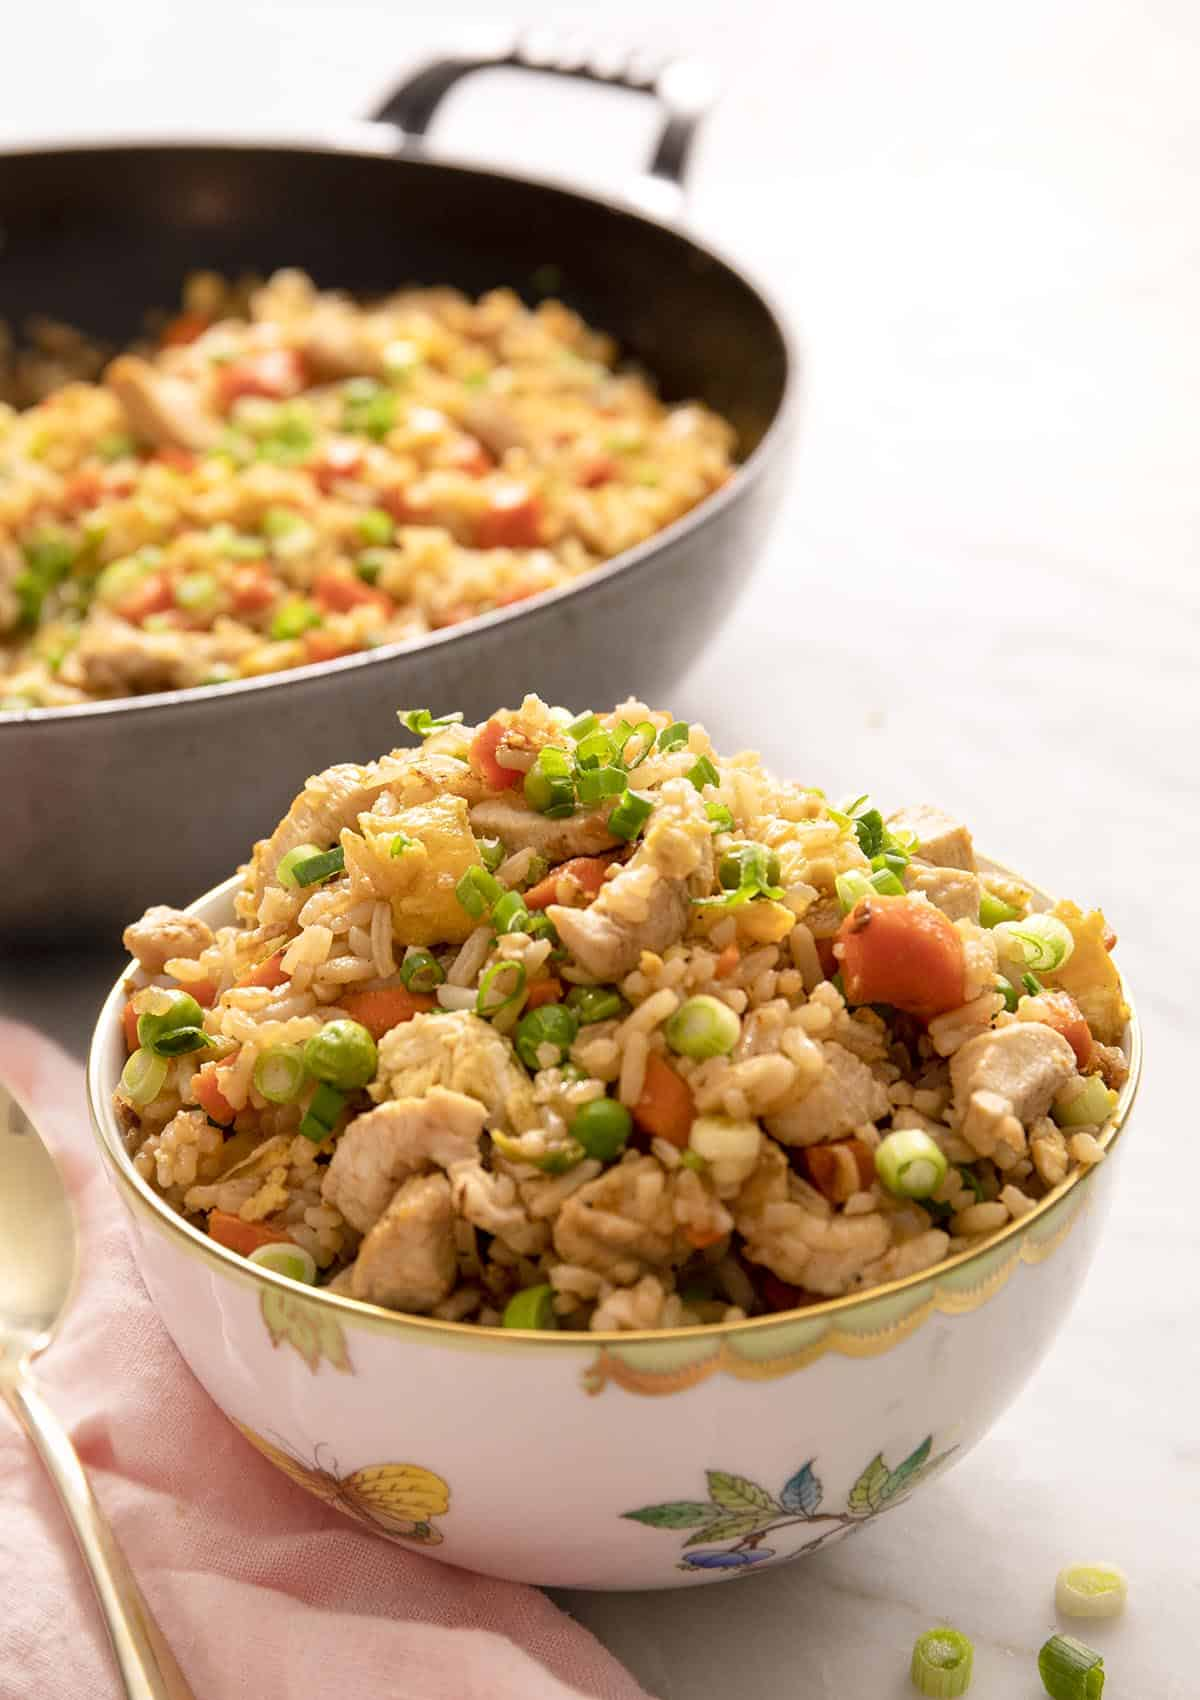 Chicken fried rice in a white bowl with a skillet behind it